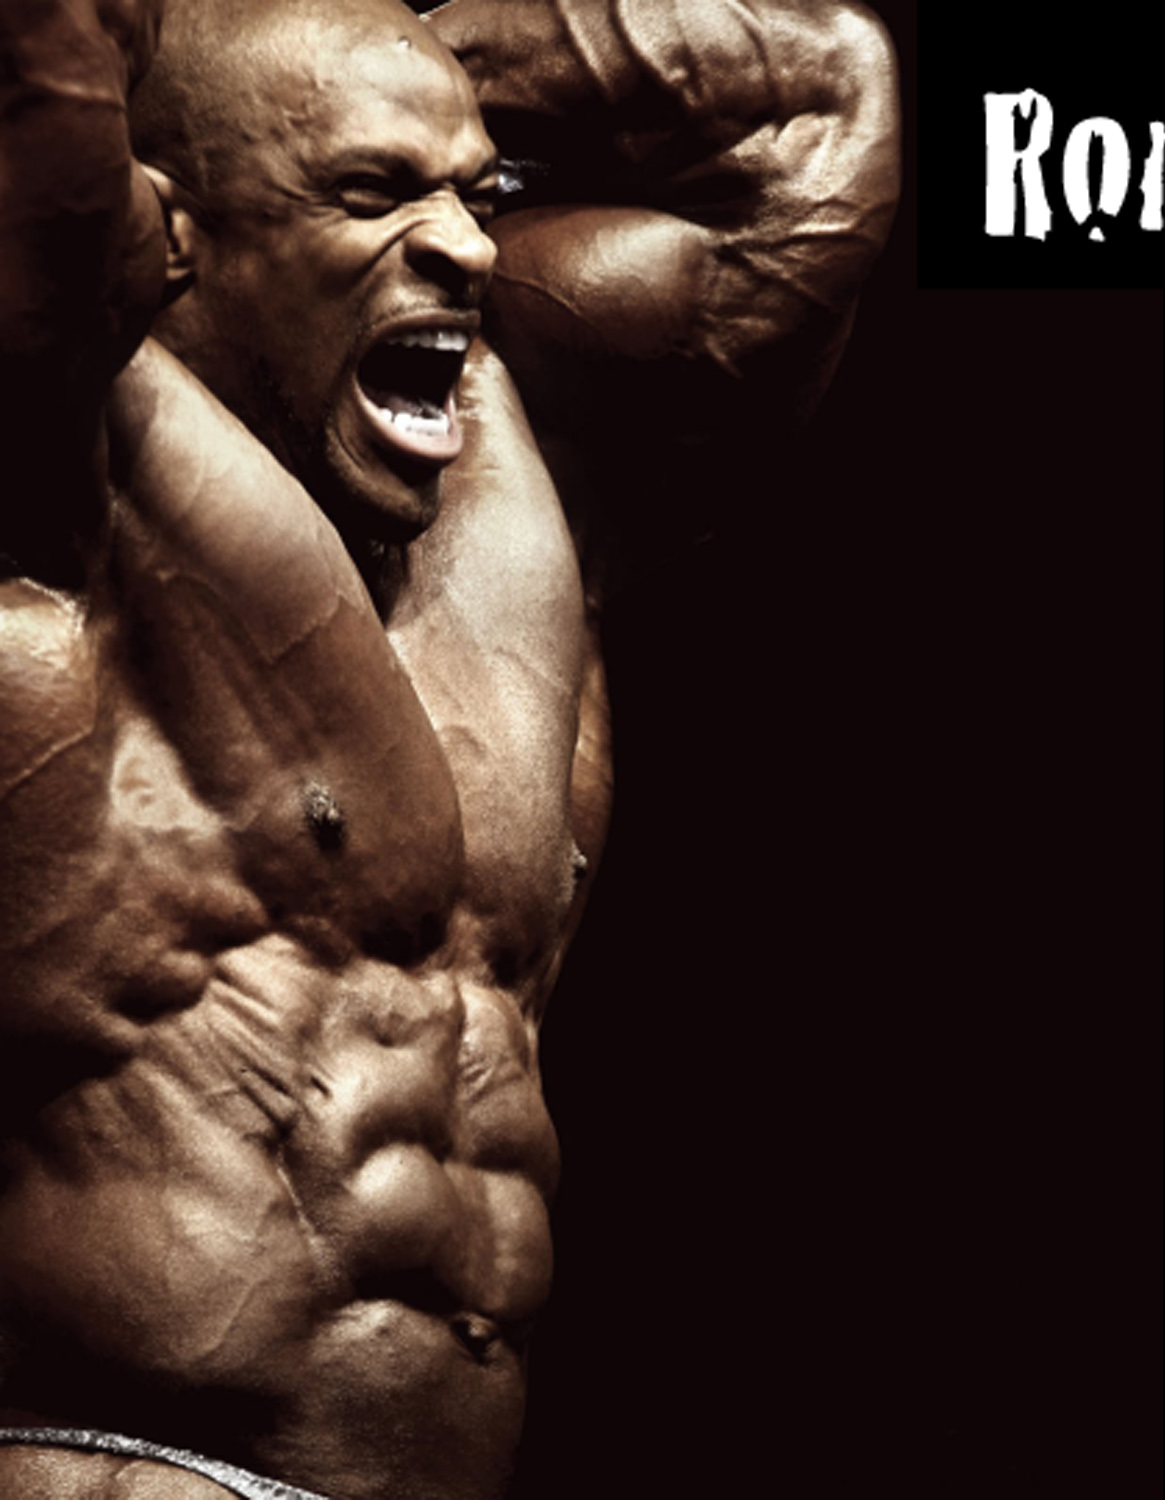 Ronnie Coleman from USA,Worlds biggest body builder,police